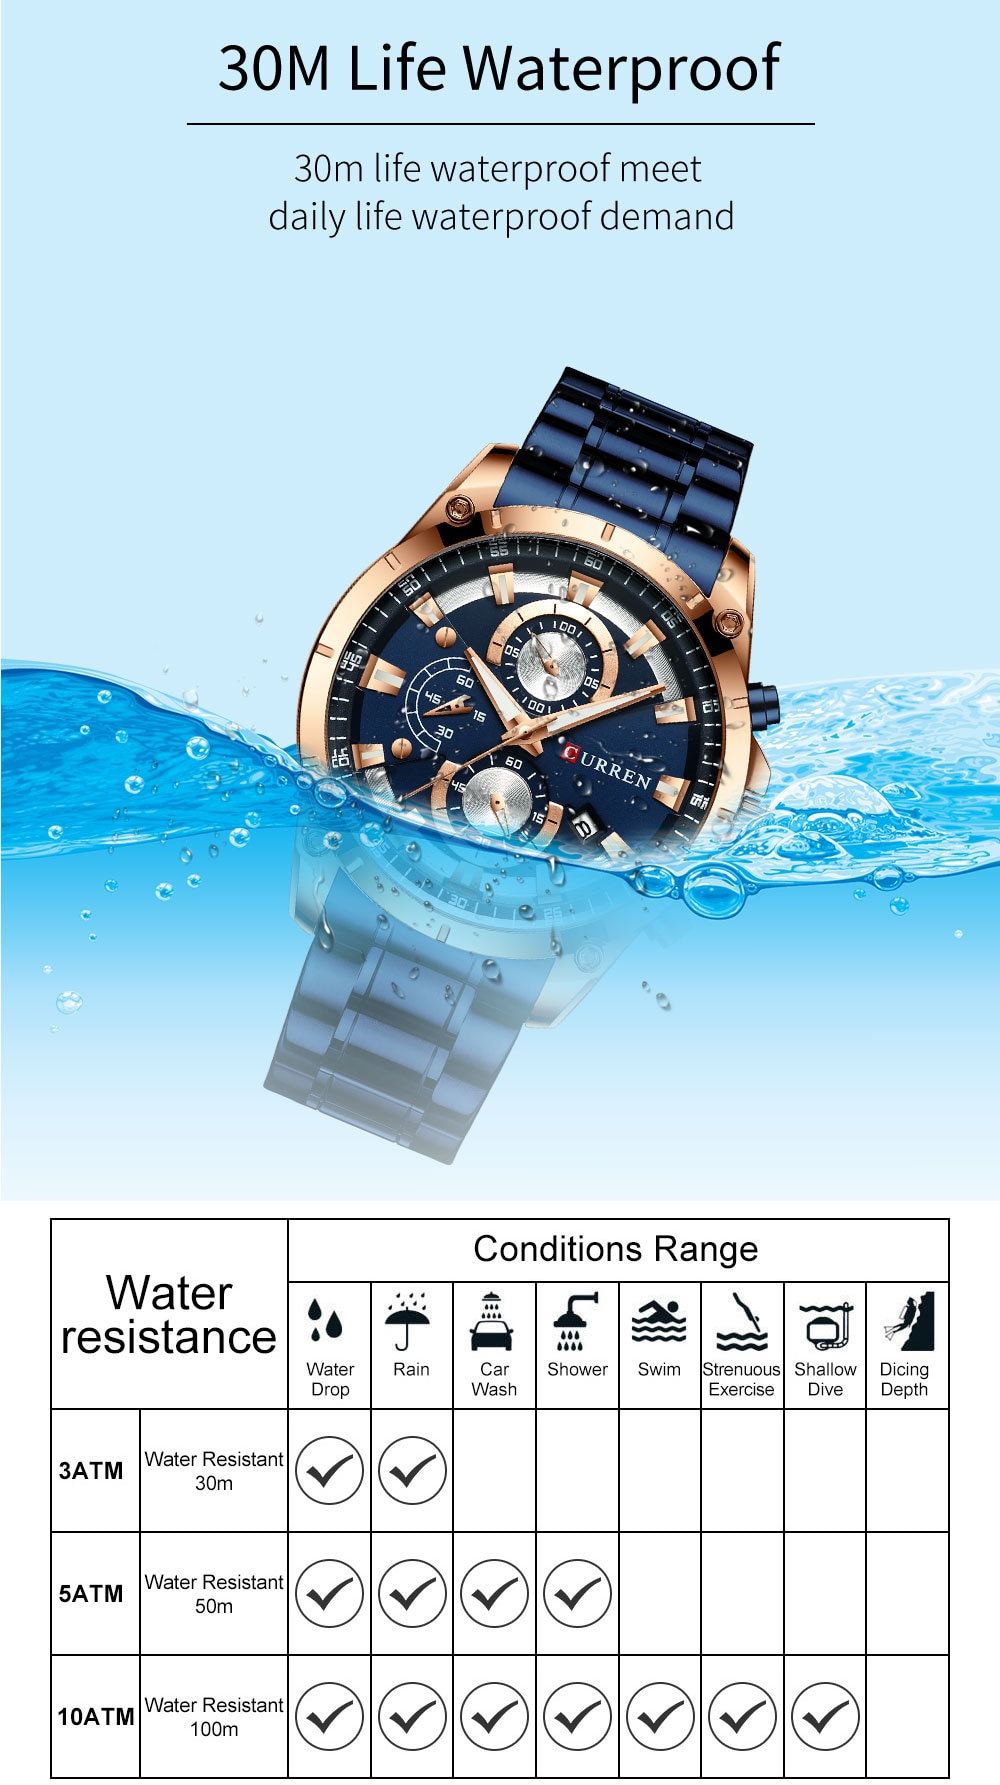 Hb582f69e5d8f486390f5bffabb46986eA - CURREN Top Brand Luxury Men Watches Sporty Stainless Steel Band Chronograph Quartz Wristwatch with Auto Date Relogio Masculino